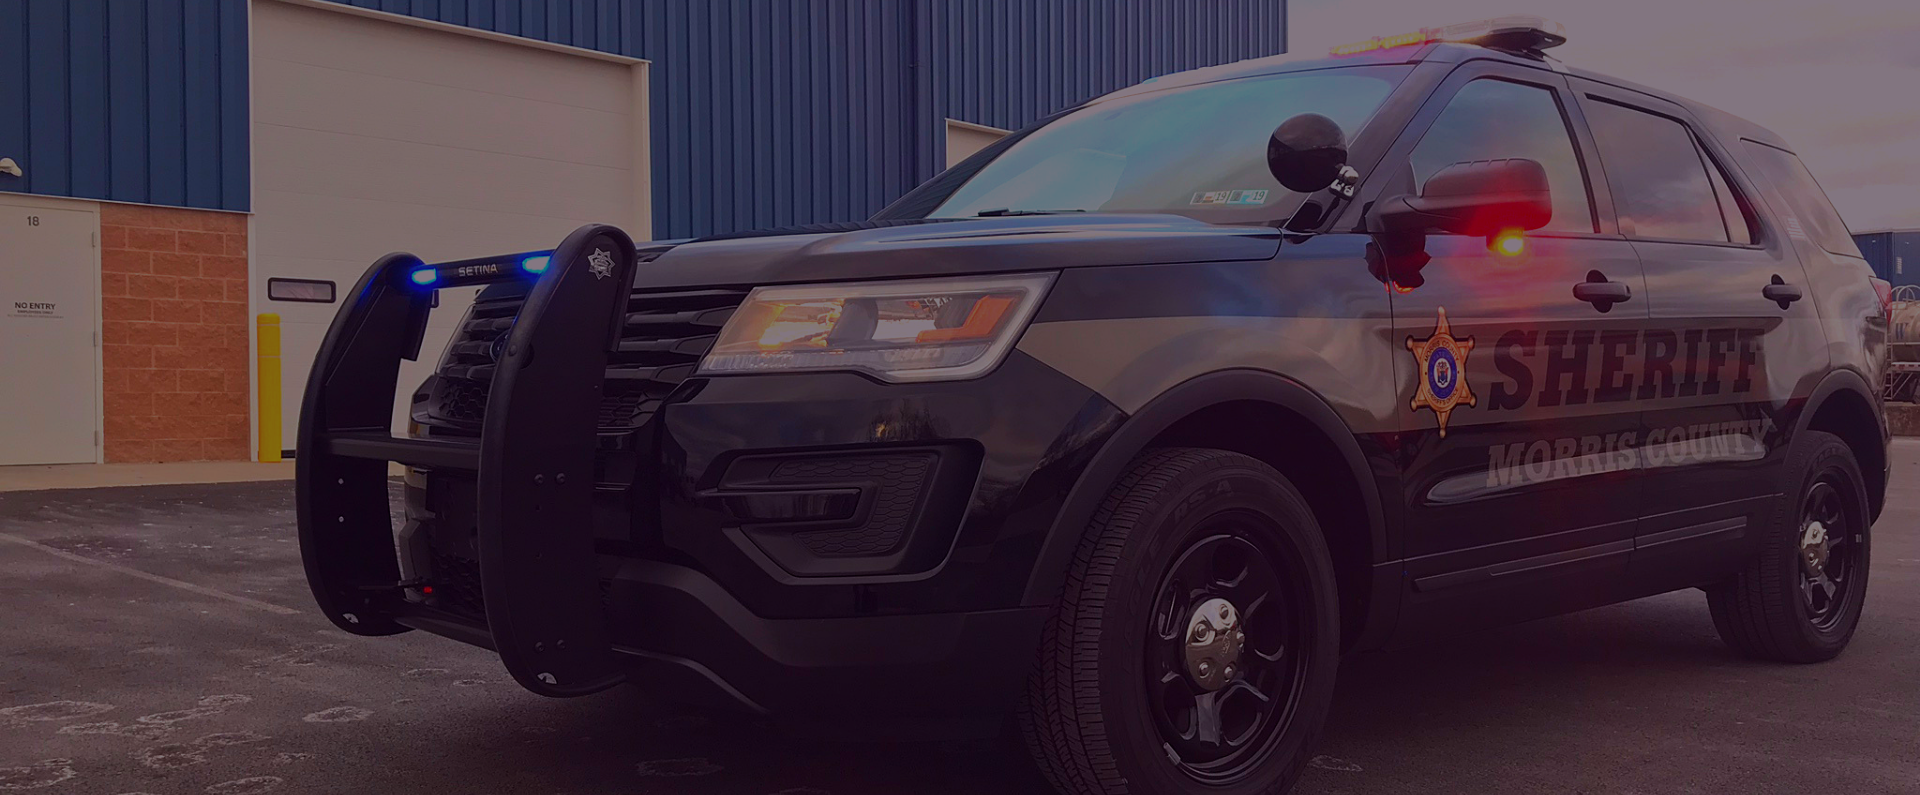 Copy of First Priority Emergency Vehicles Custom SUVs Specialty Vehicles